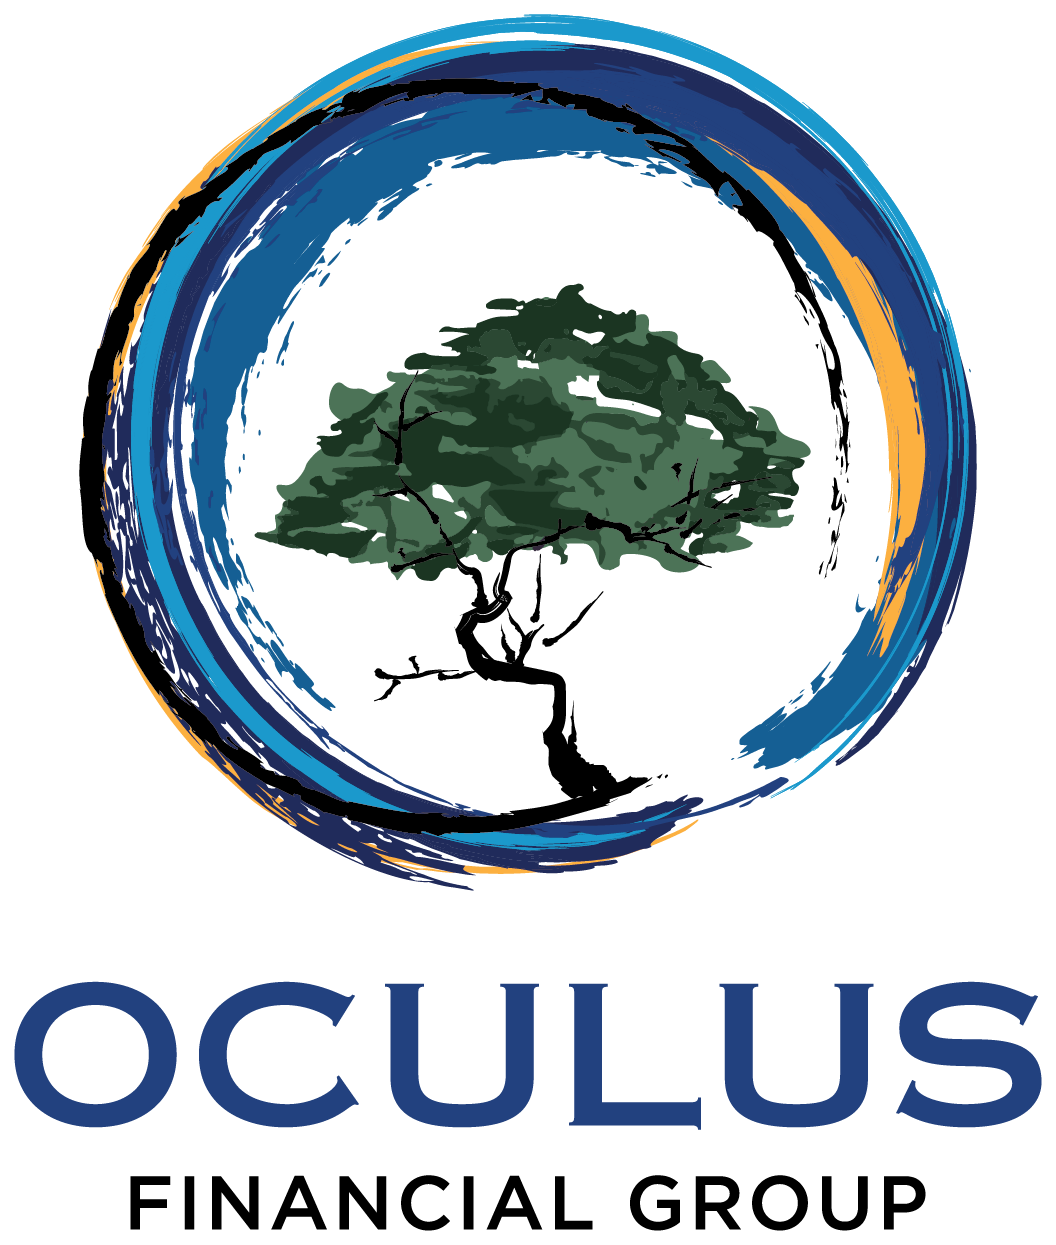 Oculus Financial Group